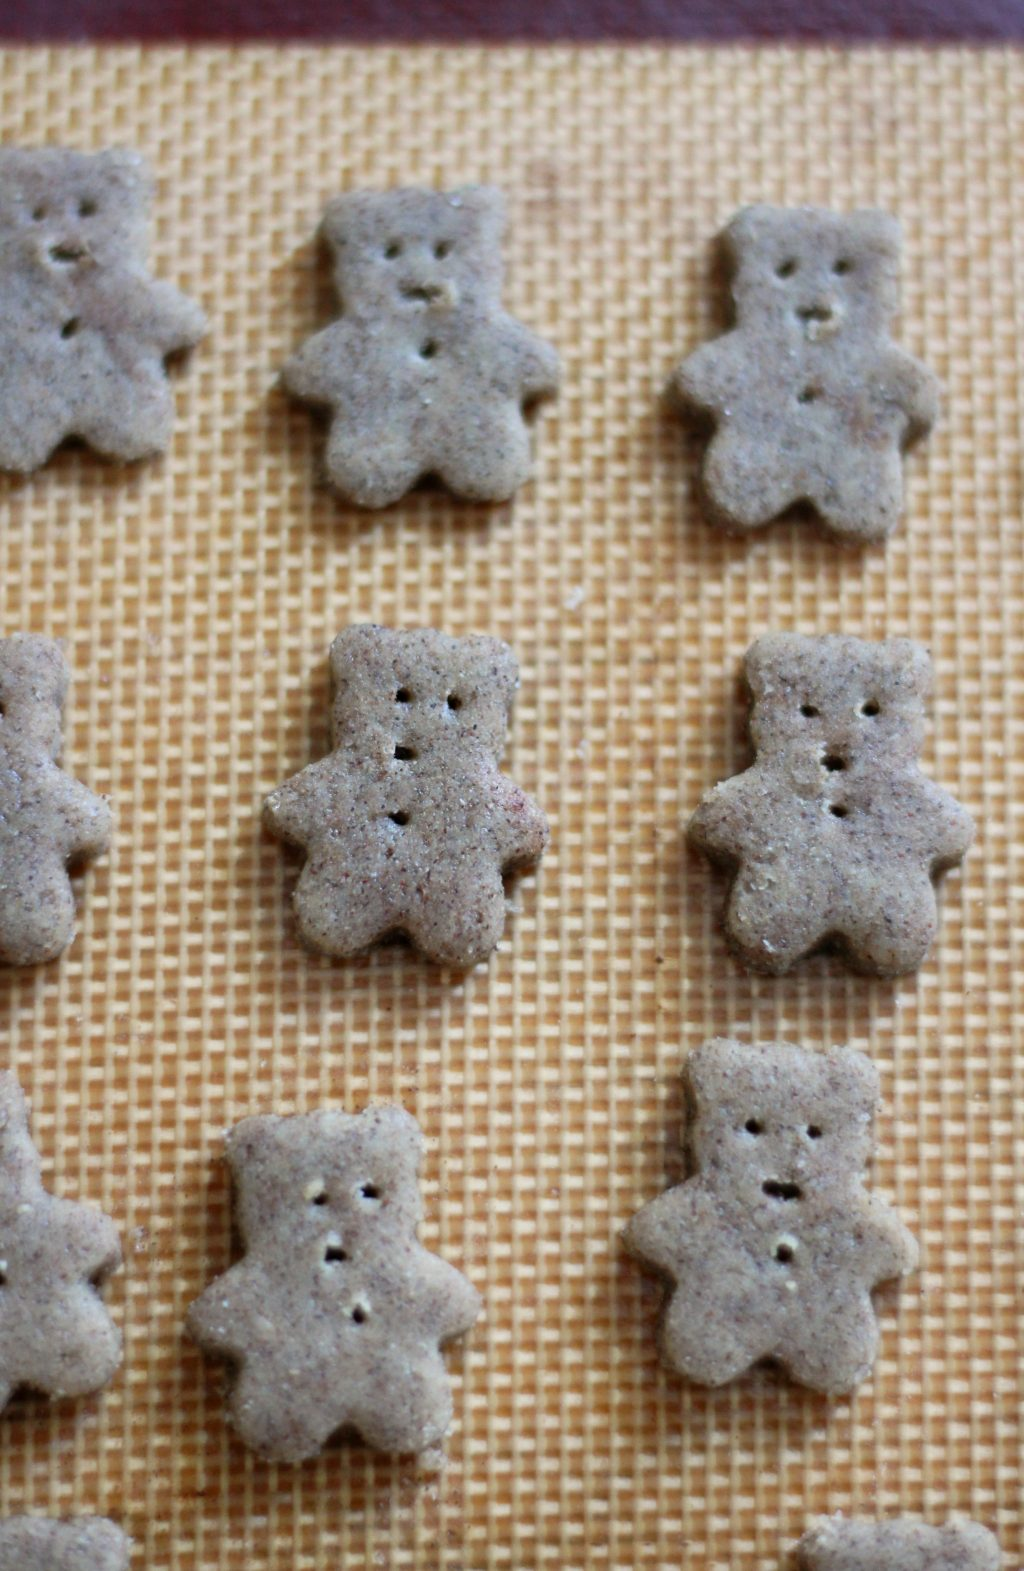 Homemade Gluten-Free Teddy Grahams (Vegan, Allergy-Free) | Strength and Sunshine @RebeccaGF666 A kid-friendly snack time favorite! Homemade Gluten-Free Teddy Grahams that are vegan, top-8 allergy-free, even sugar-free and whole grain! A recipe with options for different flavor variations, these adorable little bears with be gobbled up by little hands (and big ones too!) #teddygrahams #glutenfree #vegan #allergyfree #kidfriendly #kidfood #healthysnacks